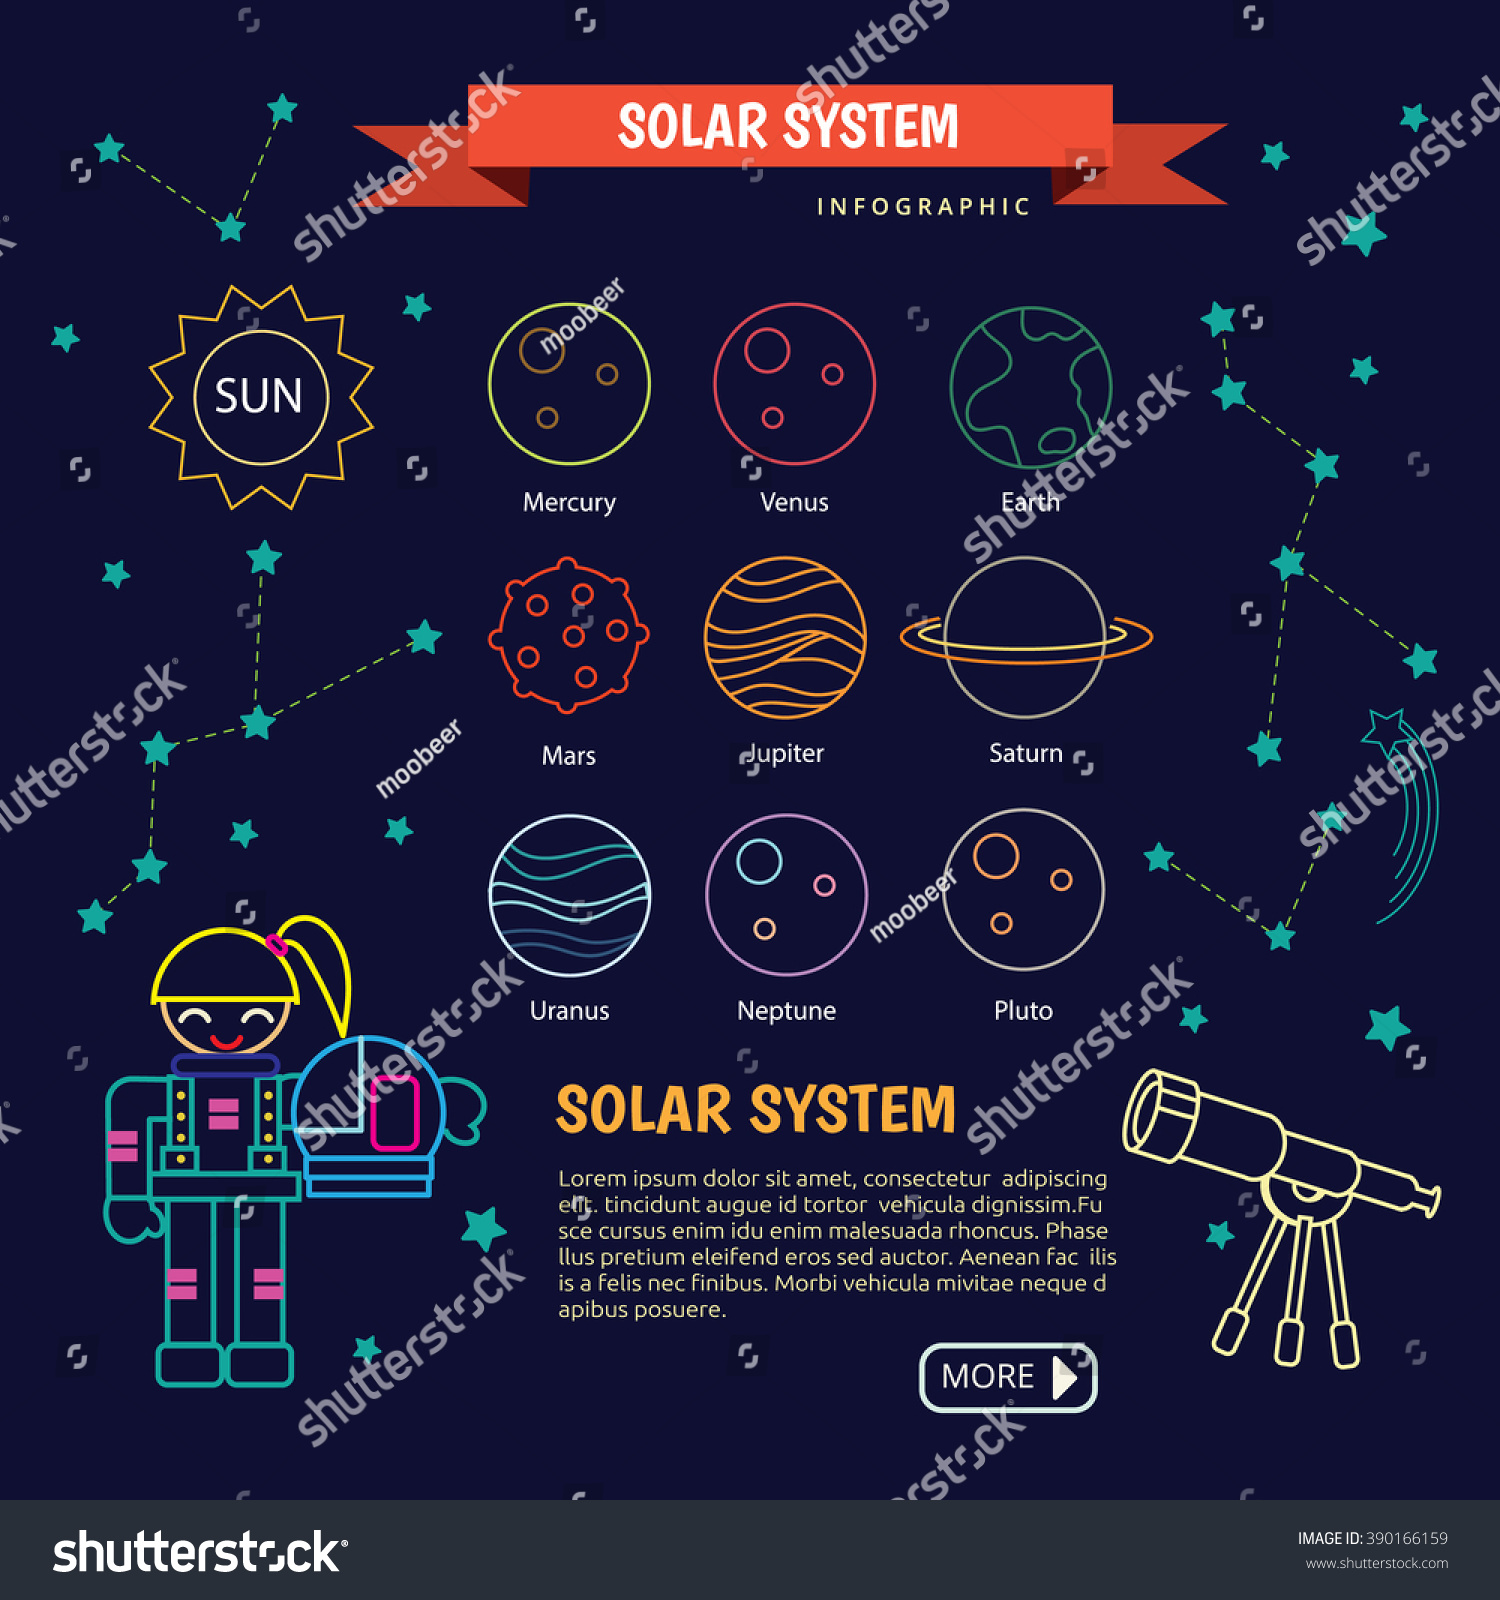 Universe Kids Solar System Planets Comparison Stock Vector Royalty Phases Of The Moon Diagram For Sun And Galaxies Classification